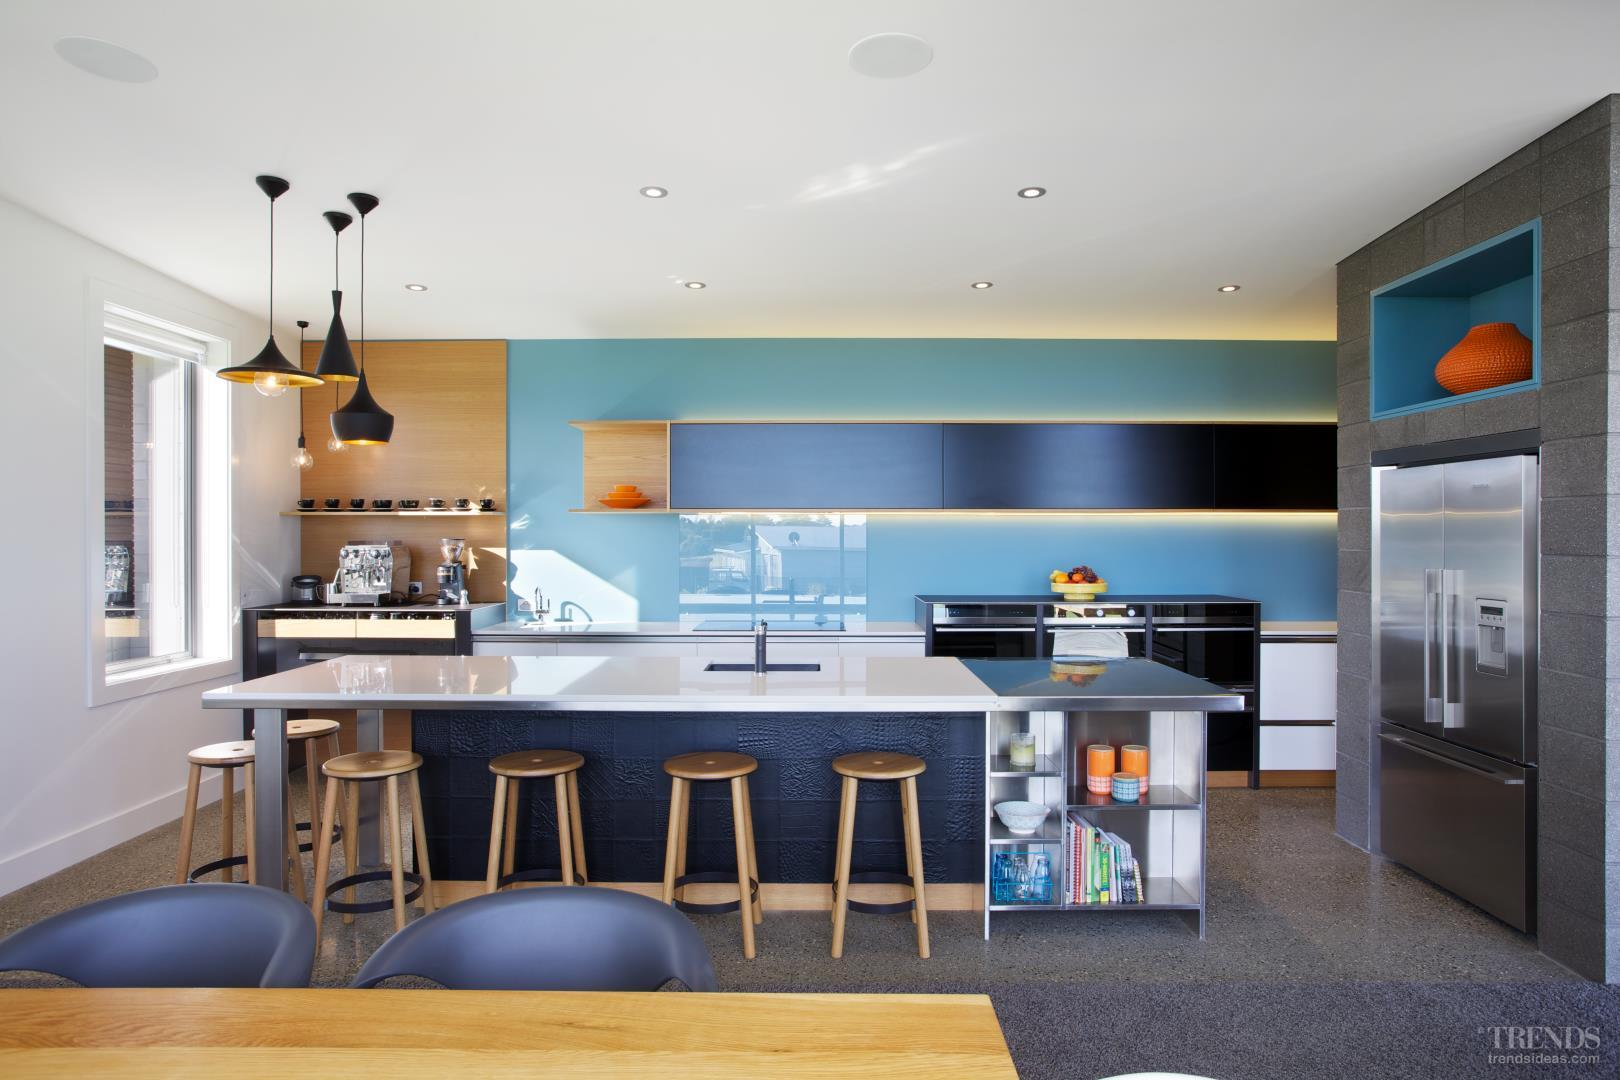 NKBA Award Winning Kitchen 2014 With Innovative Materials And Dedicated  Coffee Centre